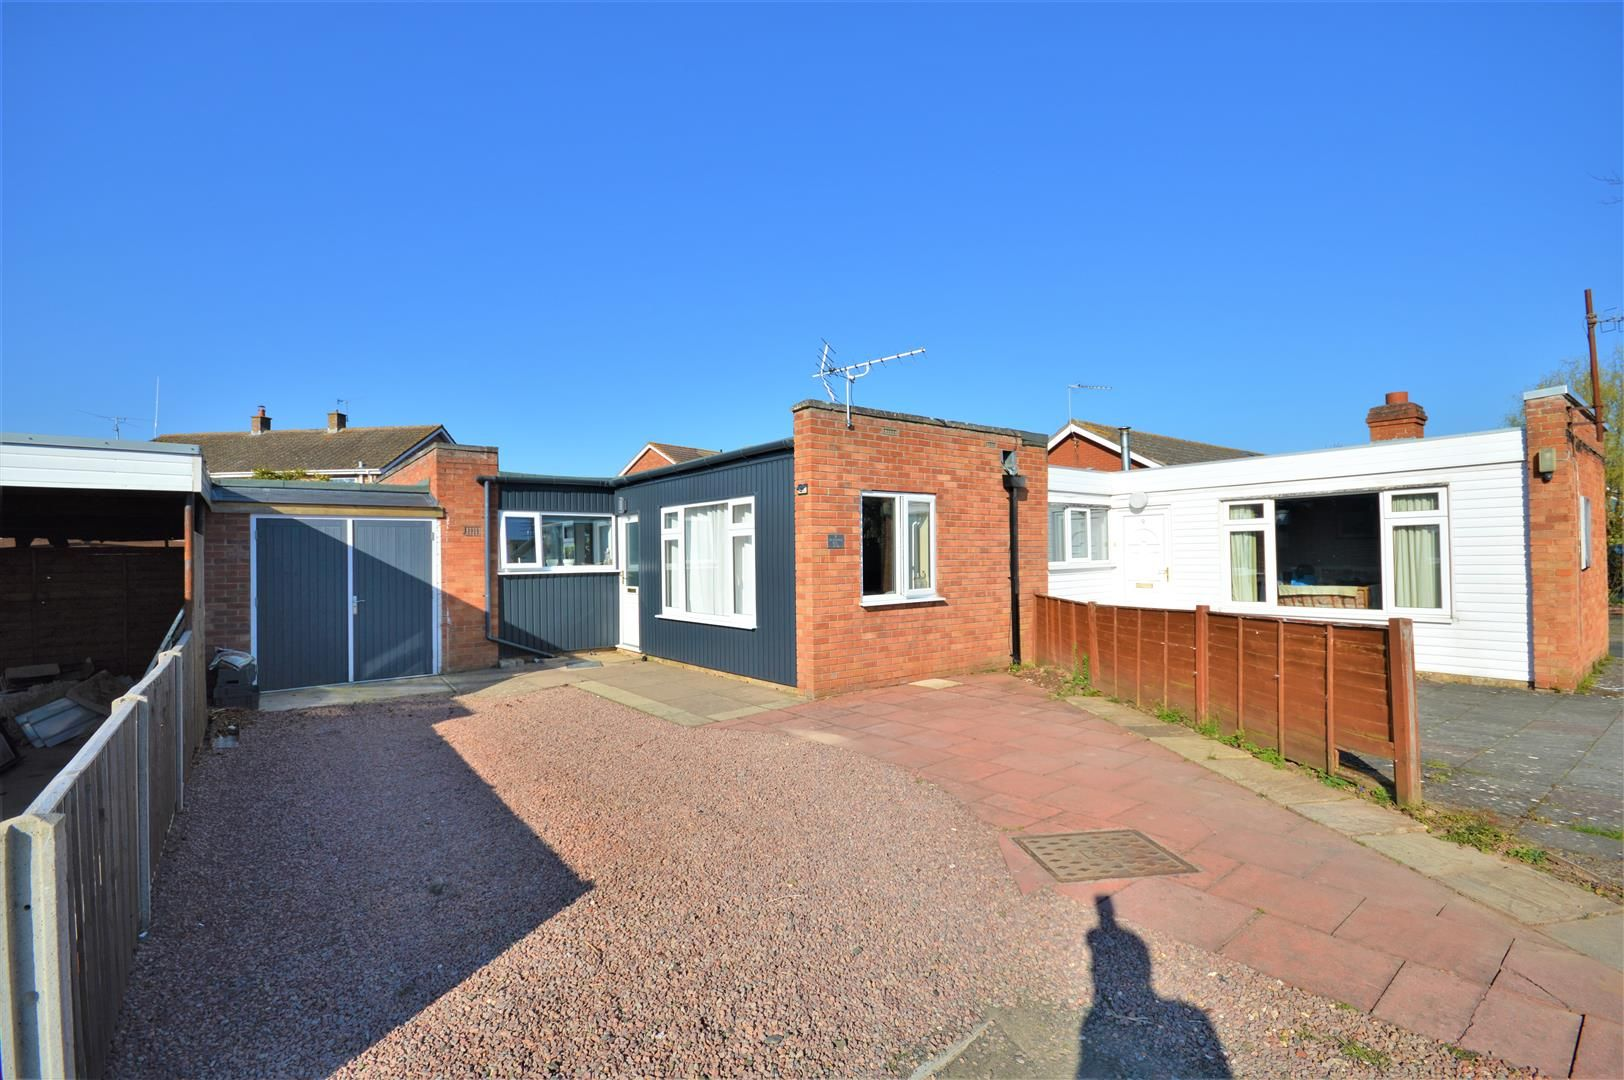 2 bed semi-detached-bungalow for sale in Marden, HR1